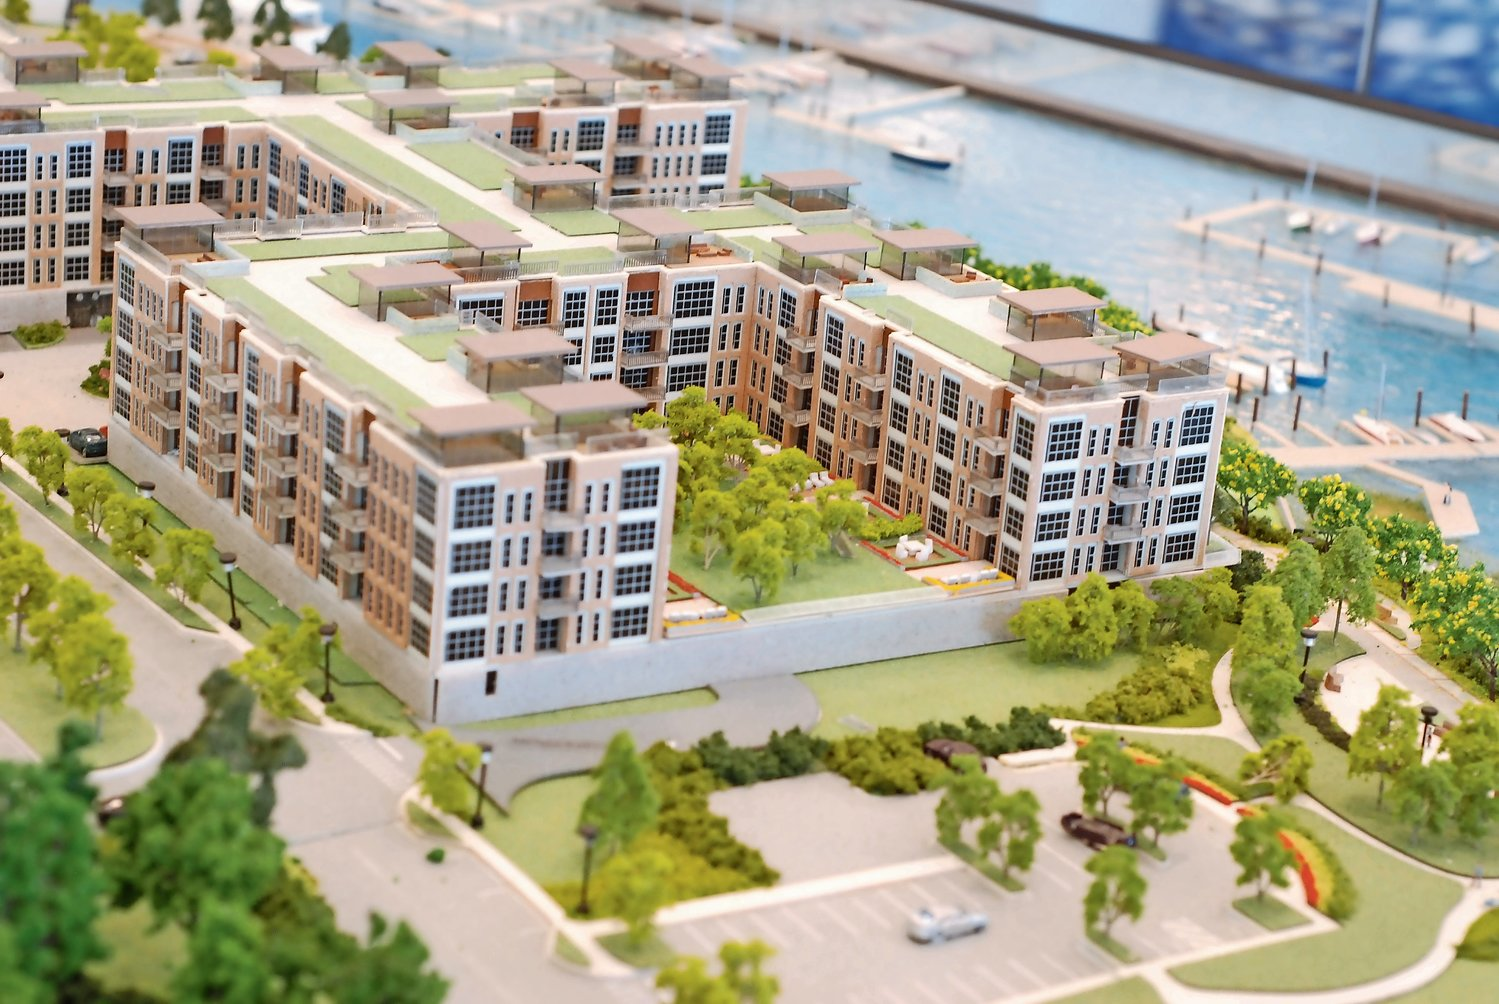 A model of the billion-dollar Garvies Point waterfront project in Glen Cove. The Village of Sea Cliff and local residents had separately sued to halt the project, but lost in court.